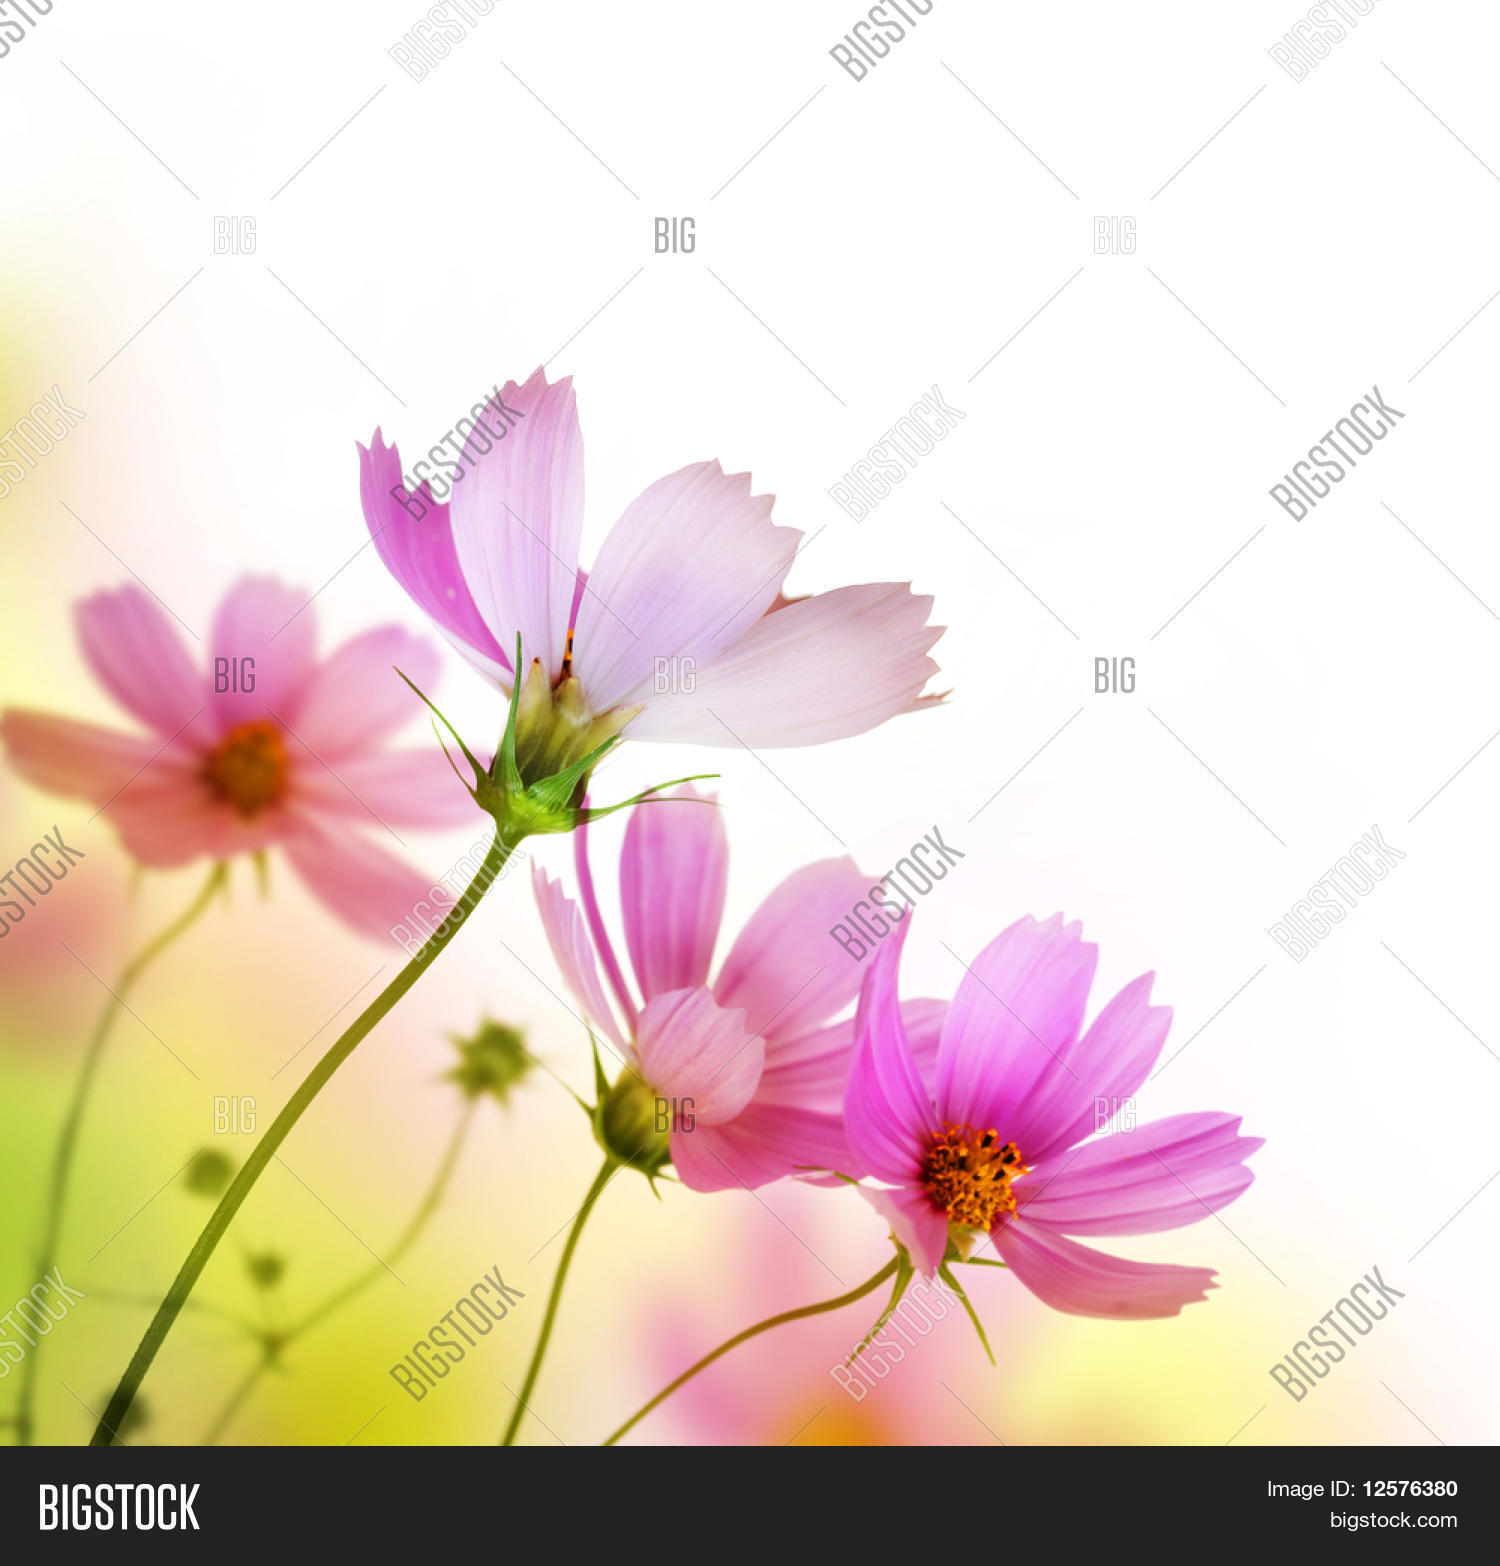 Beautiful floral borderflower image photo bigstock beautiful floral borderflower design voltagebd Image collections